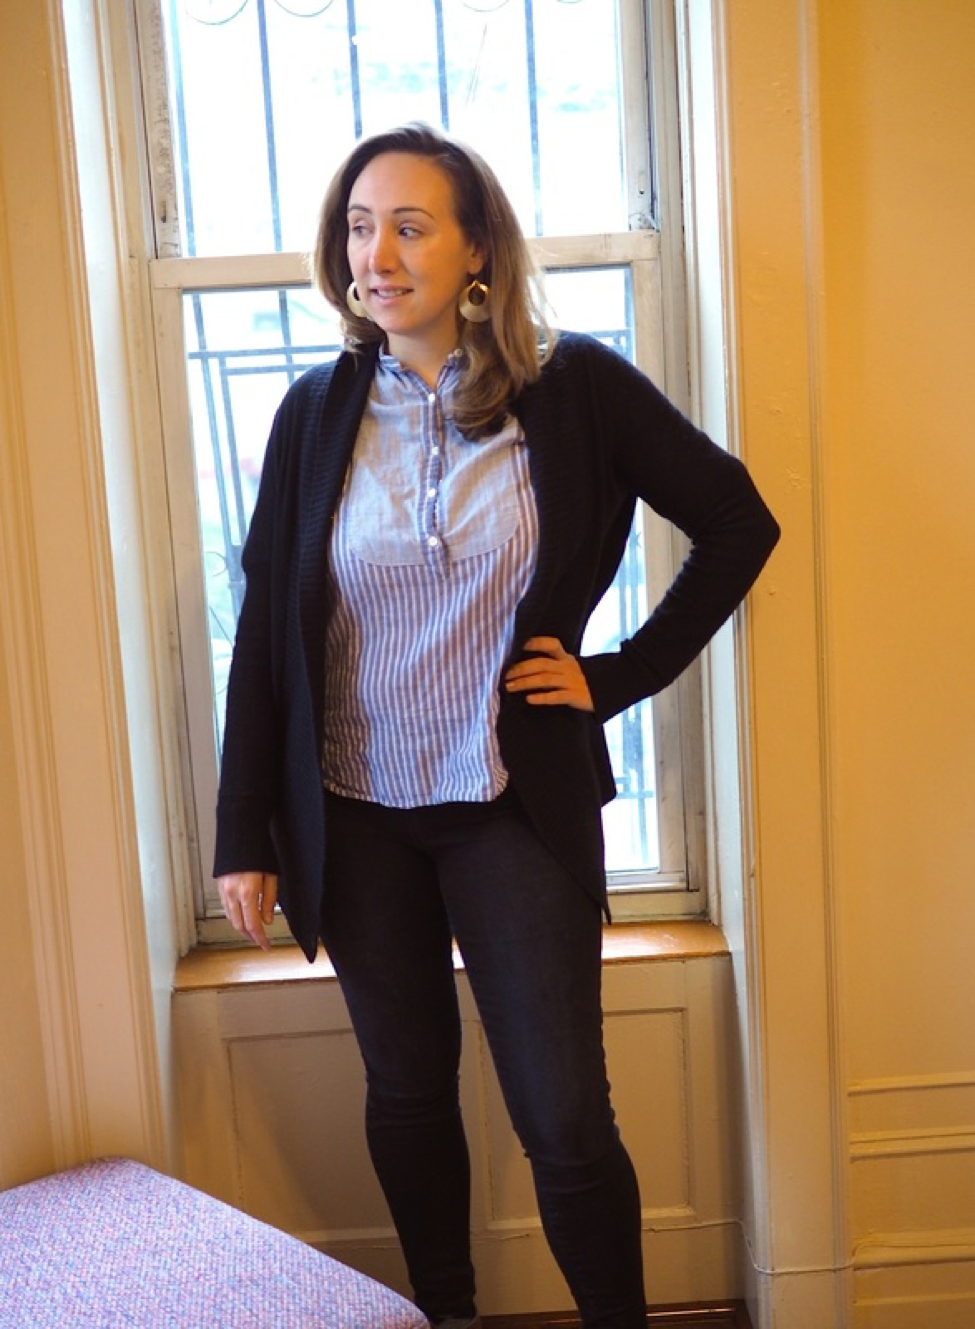 A possible pumping-friendly outfit with a shirt with front opening and a cardigan.